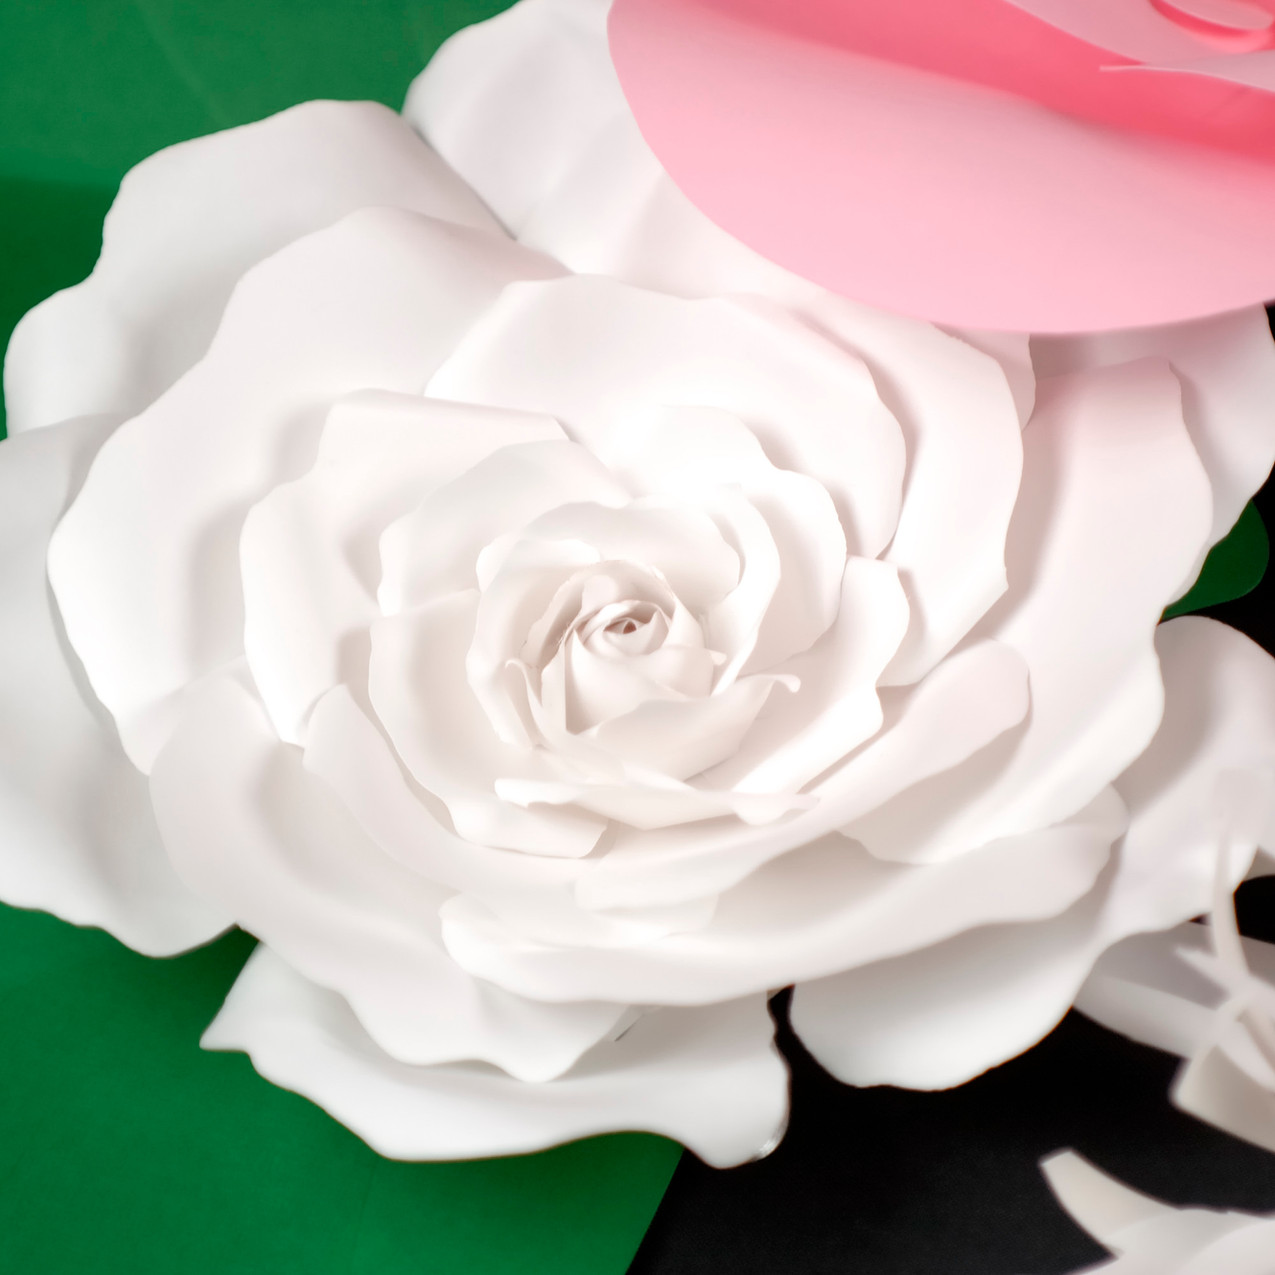 Wall giant flower decor - pink flower 2